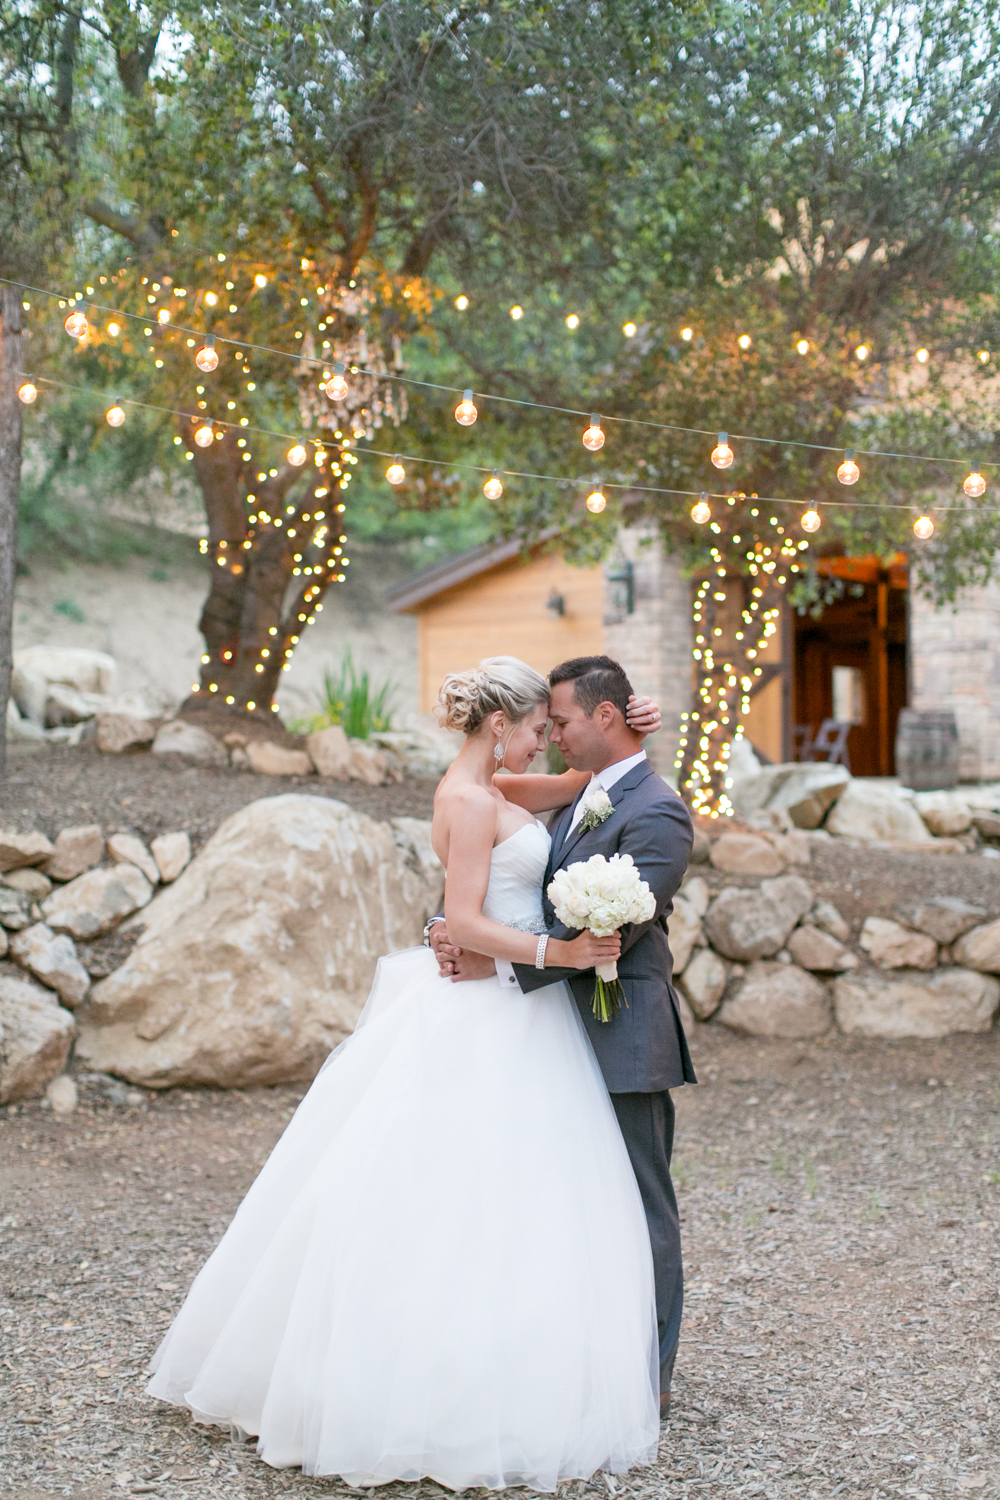 Serendipity Gardens-Wedding Photography-Oak Glen-California-Lovi